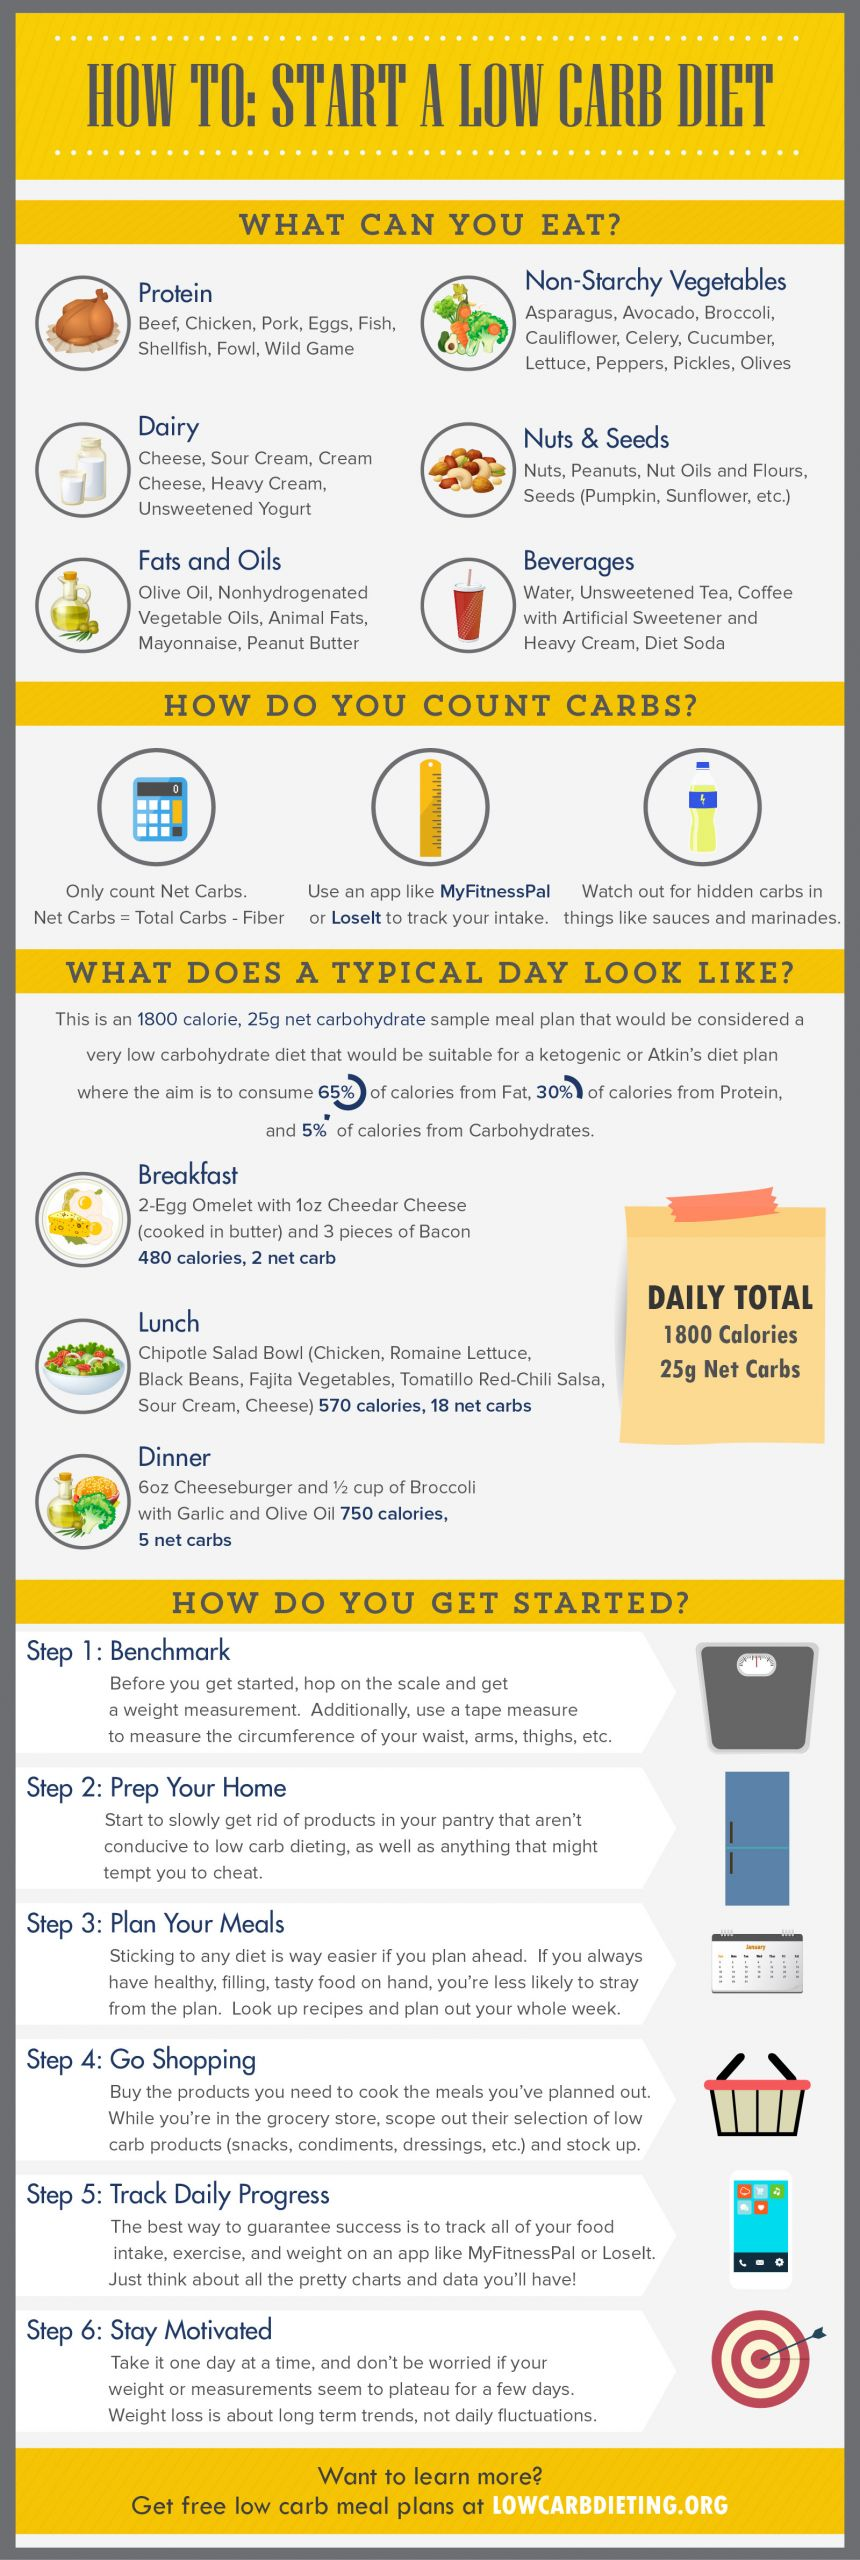 Low Carb Diet Plan  How To Start a Low Carb Diet LowCarbDieting